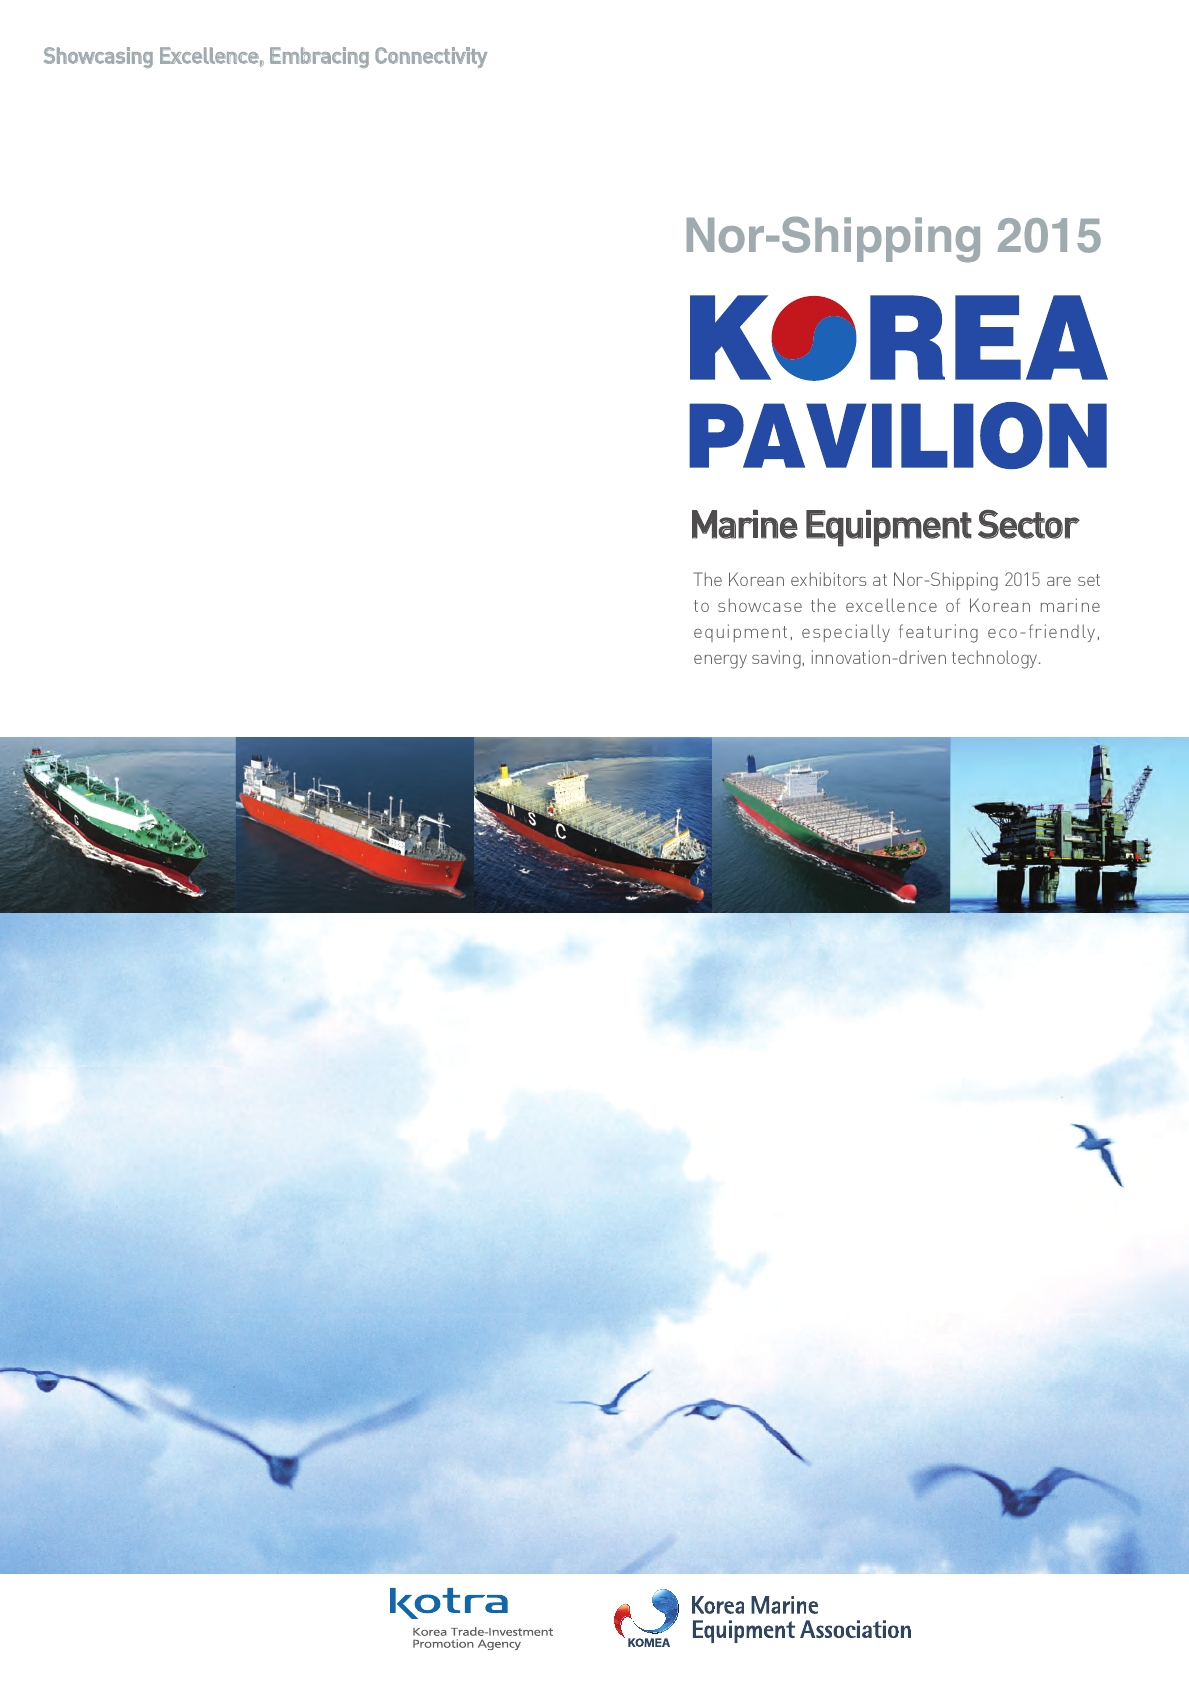 「Nor-Shipping 2015」 KOREA PAVILION